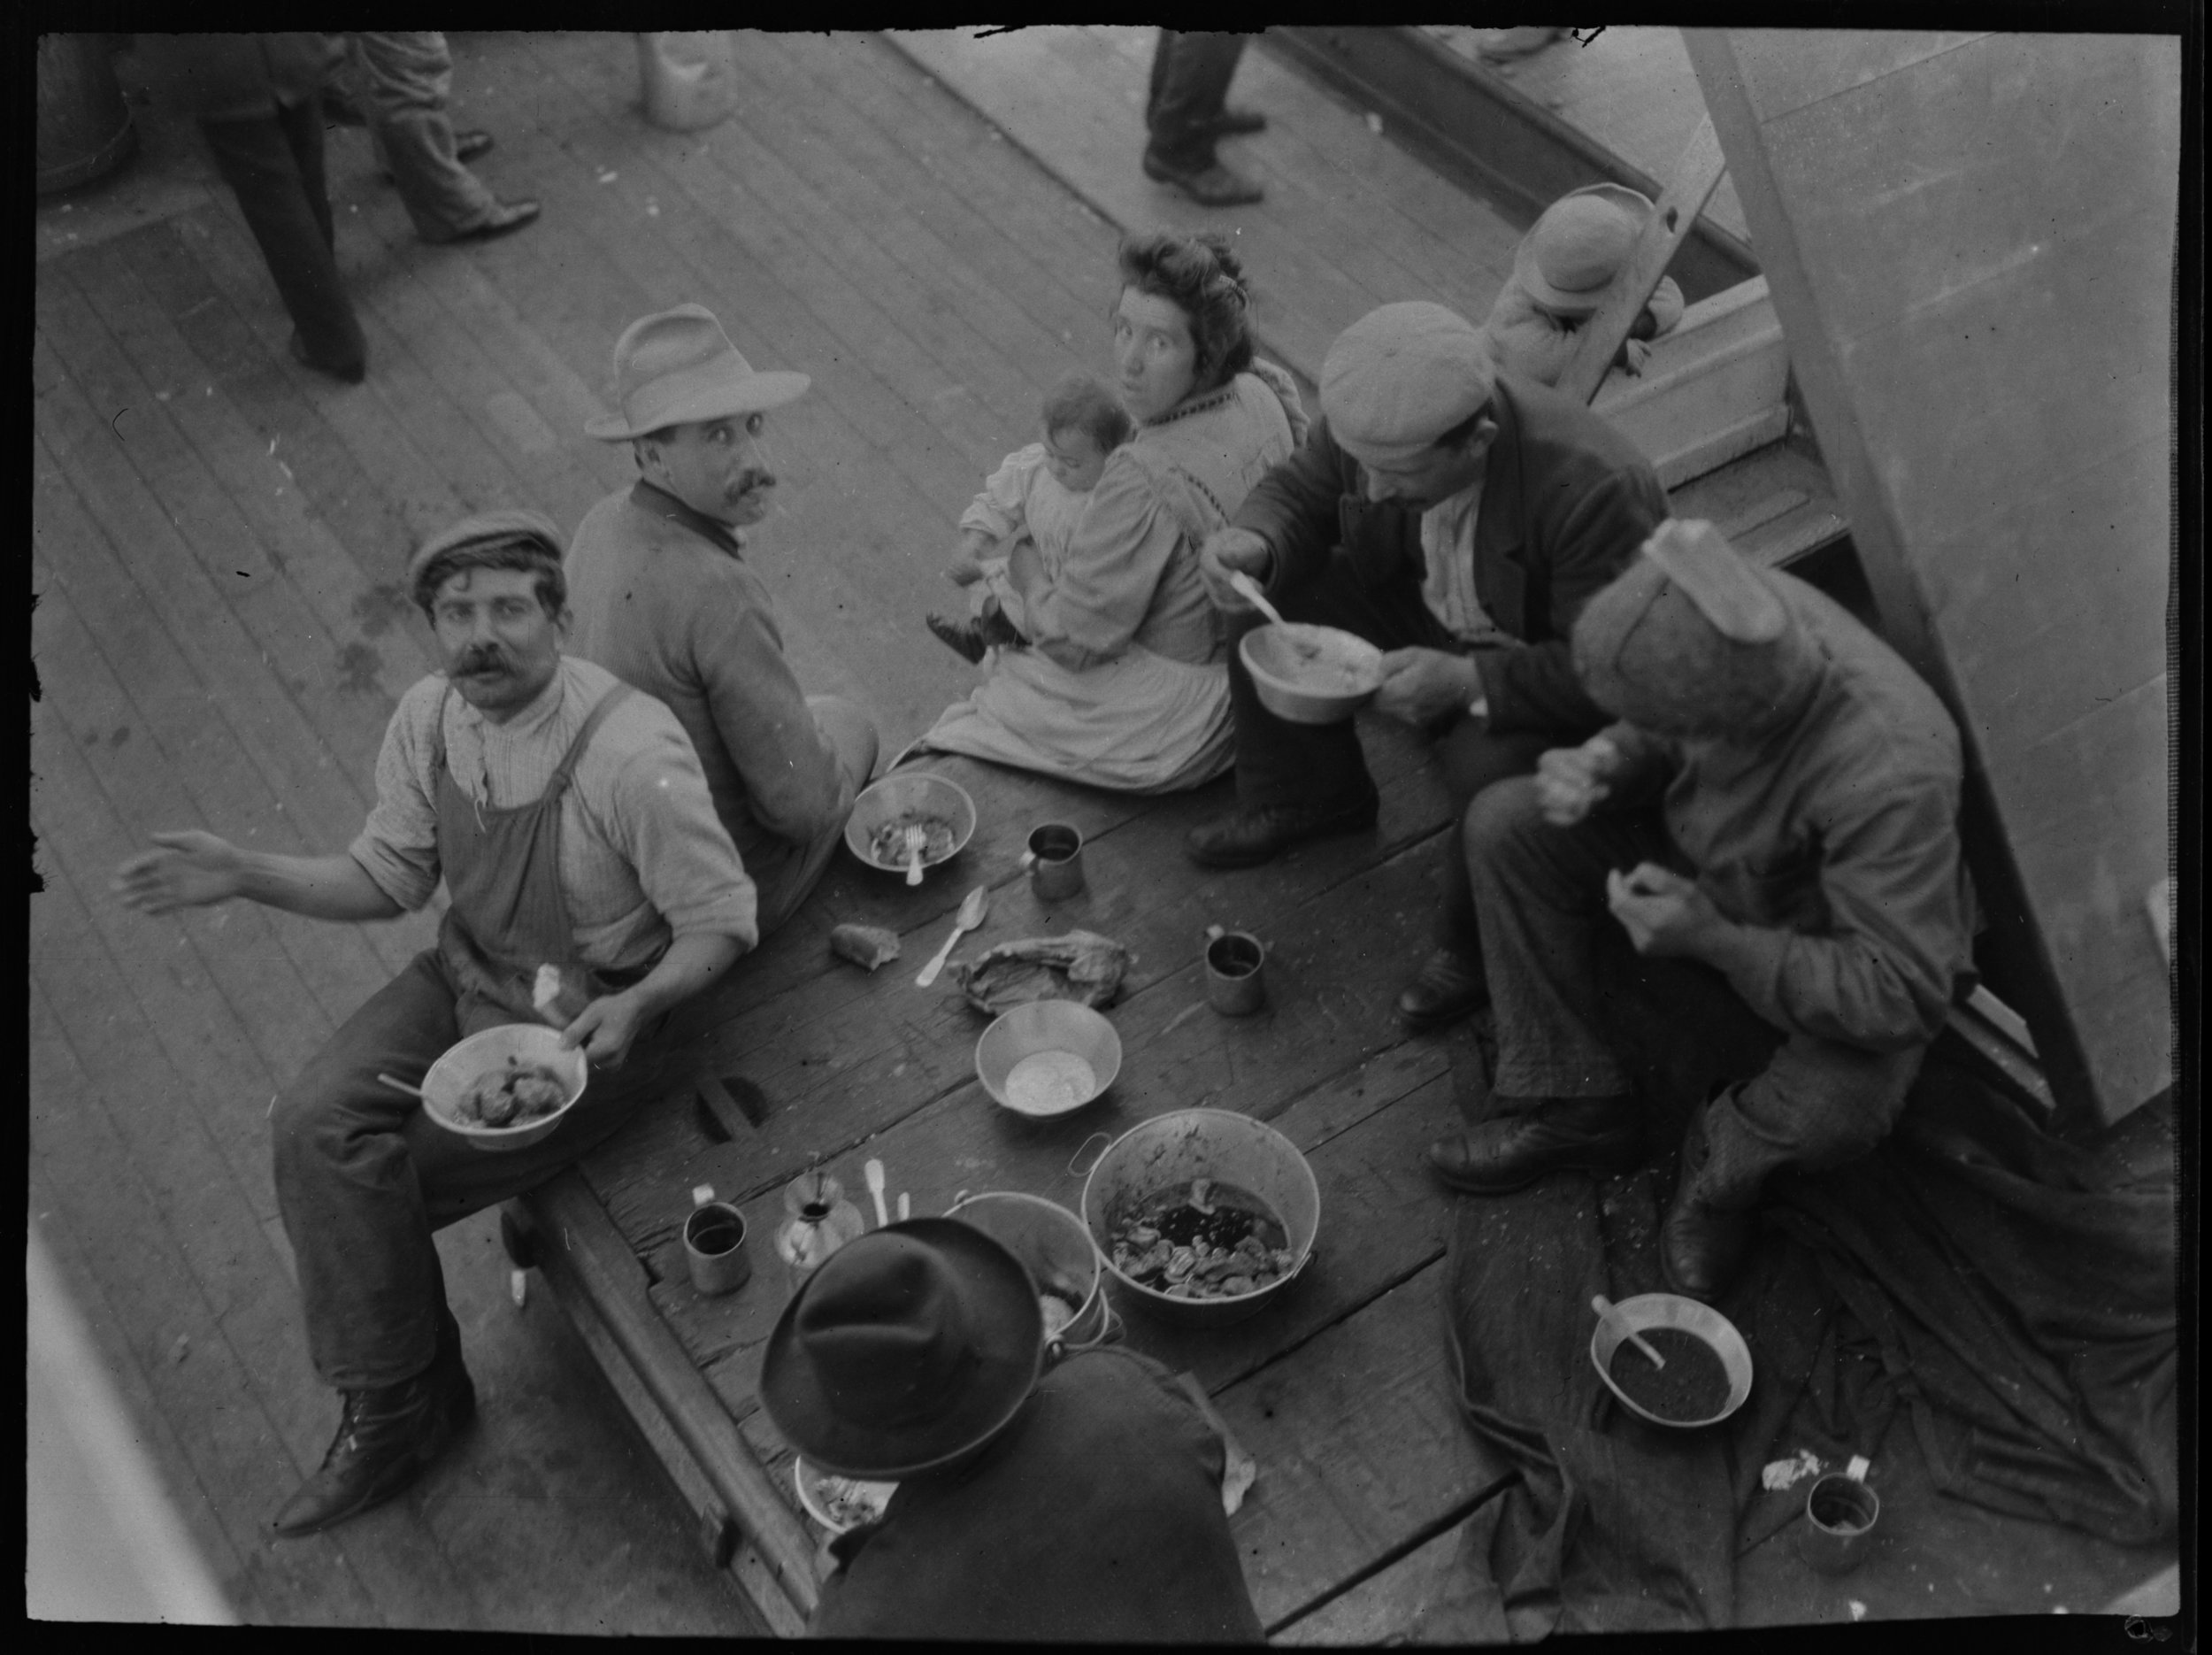 """Steerage at supper,"" aboard the S.S. Finland, June 14, 1909"